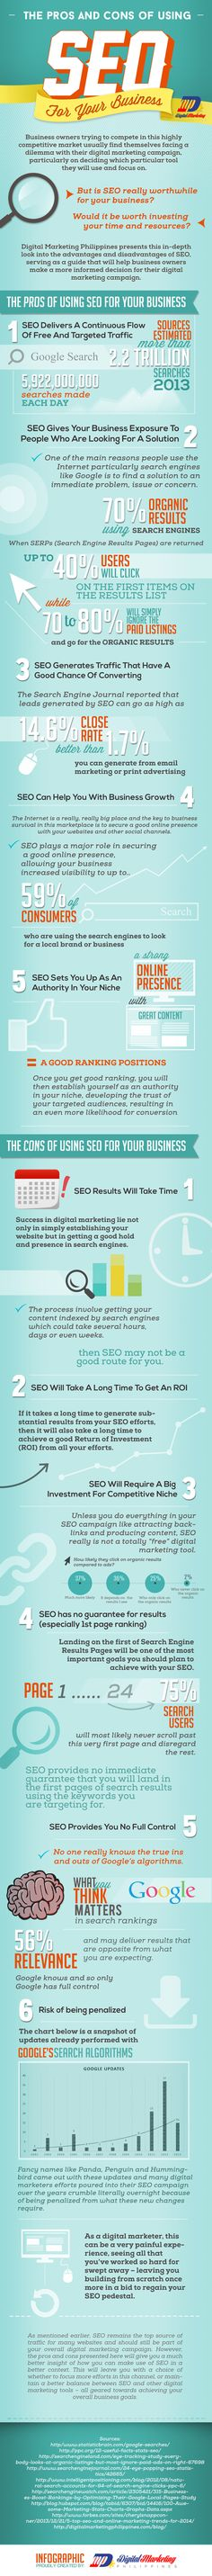 The Pros and Cons of Using SEO for Your Business (Infographic)